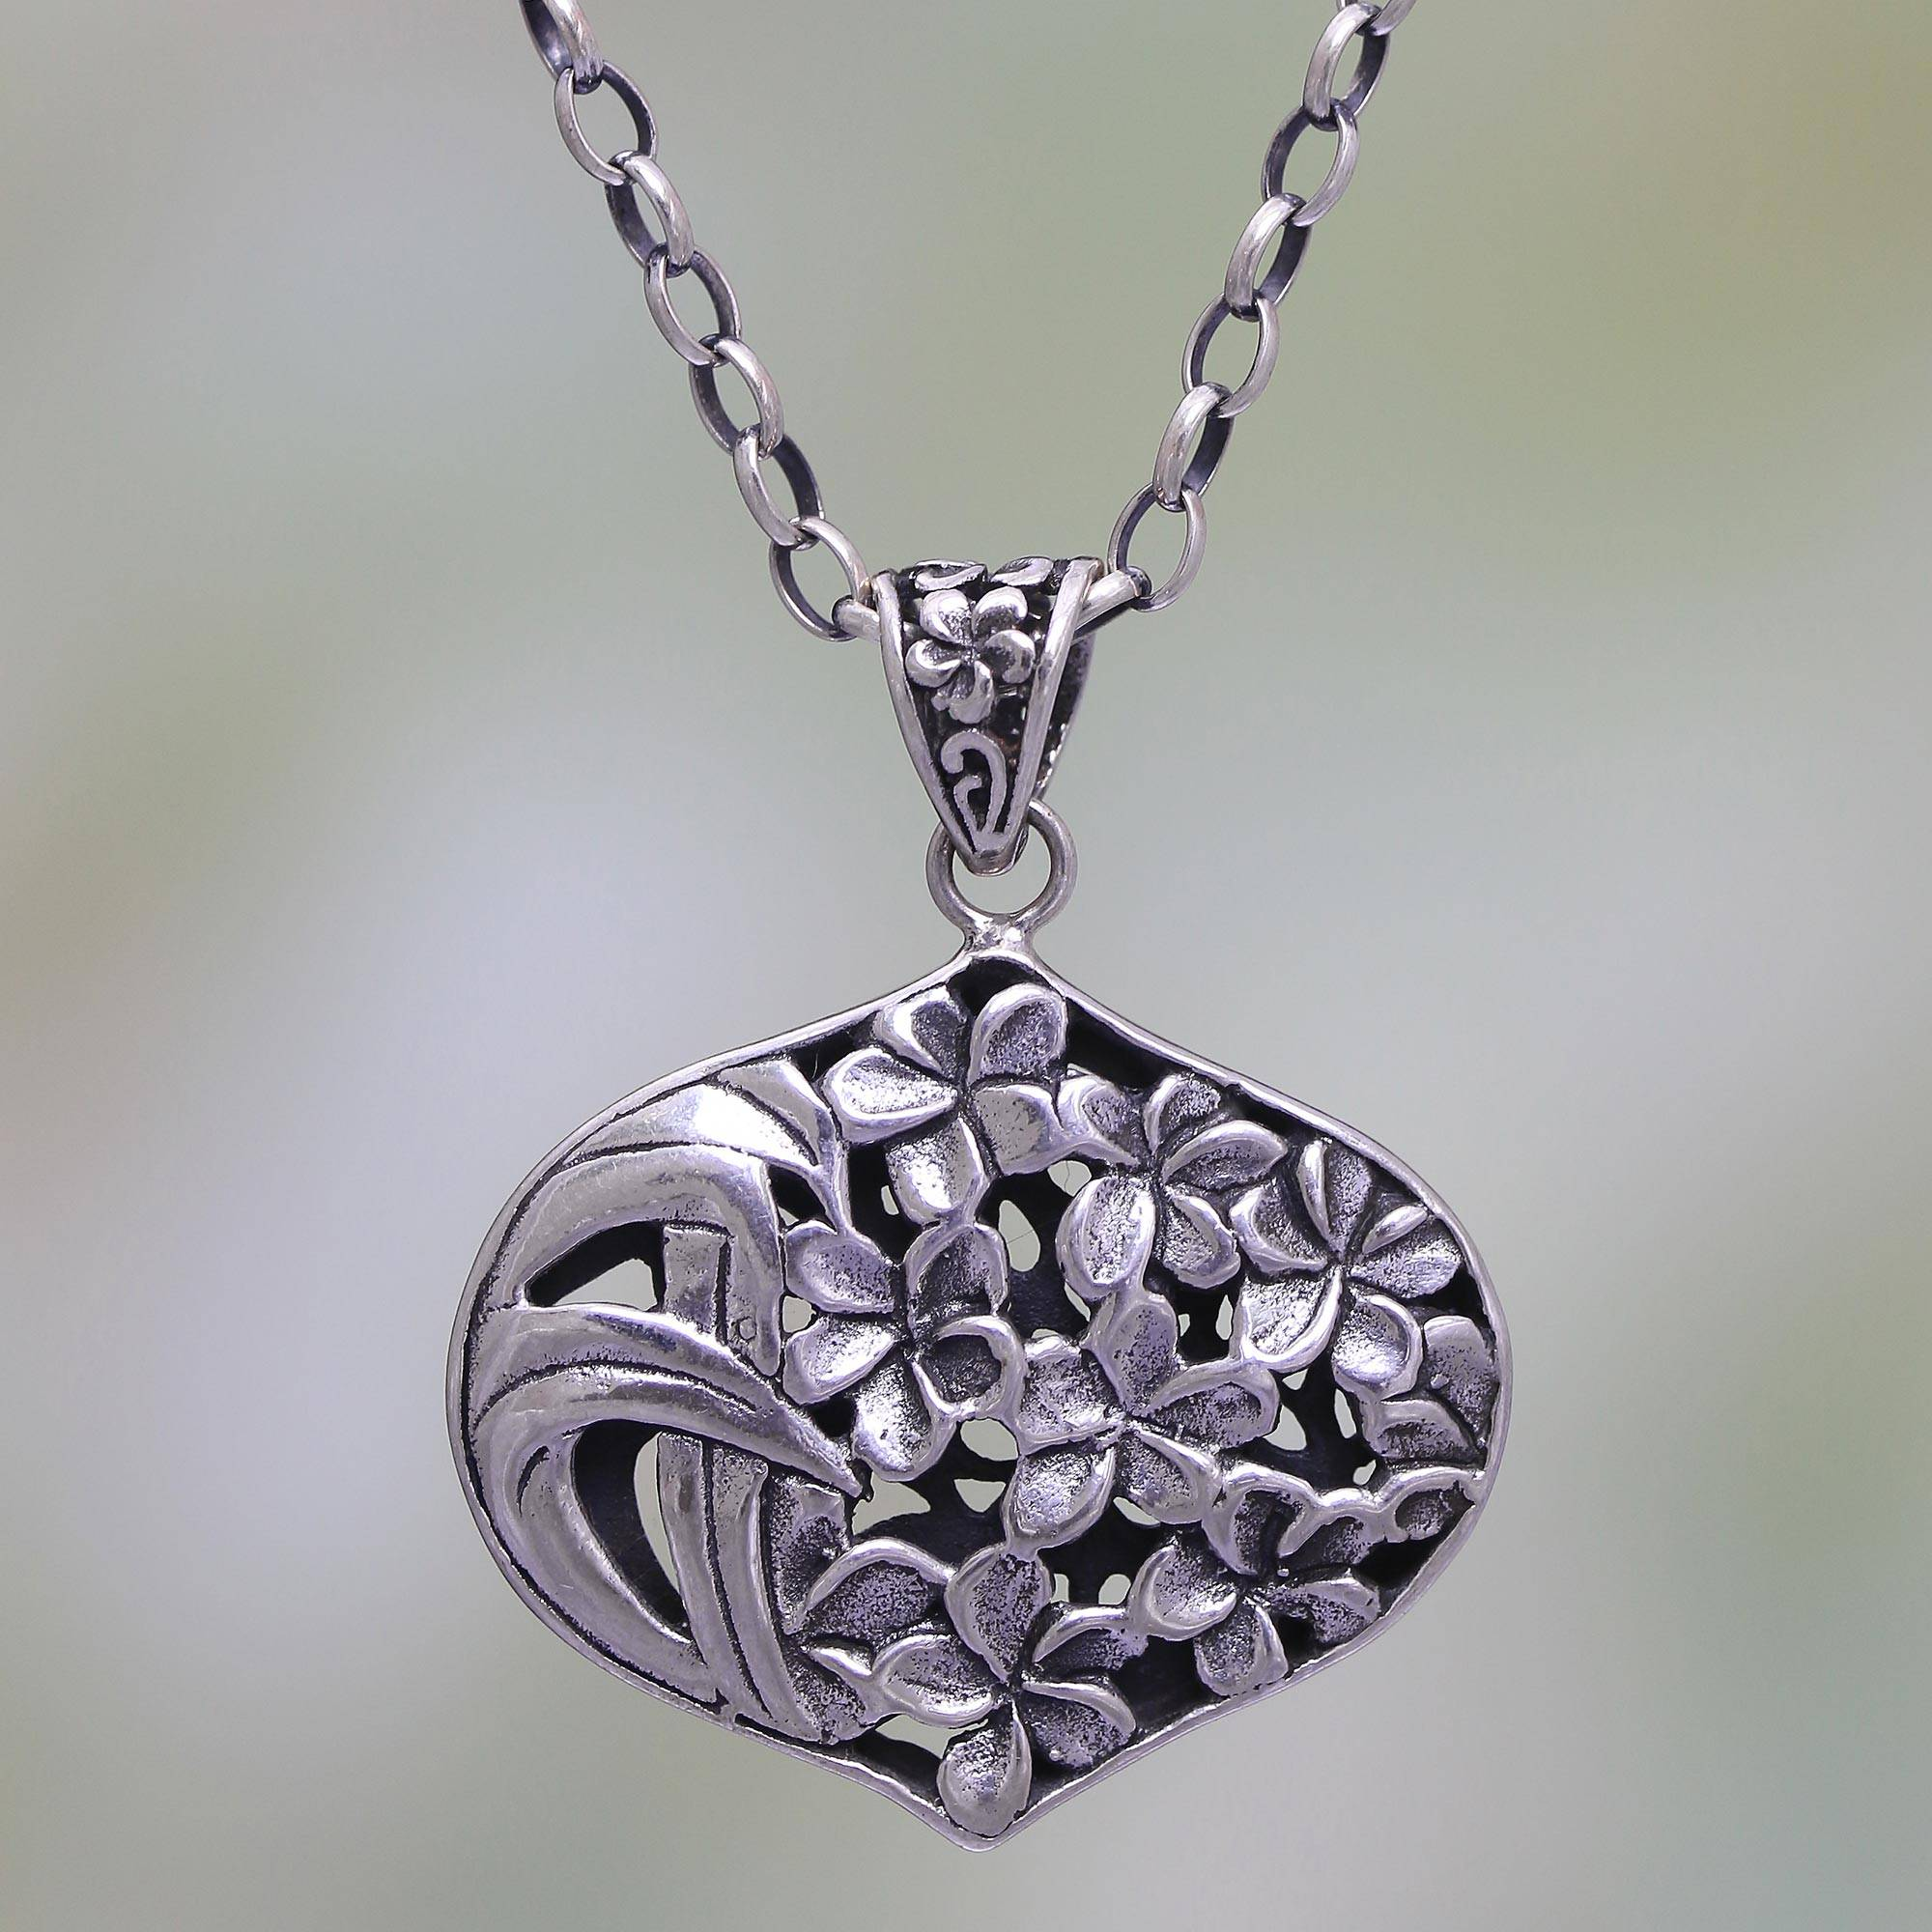 Frangipani Flower Sterling Silver Pendant Necklace From Bali